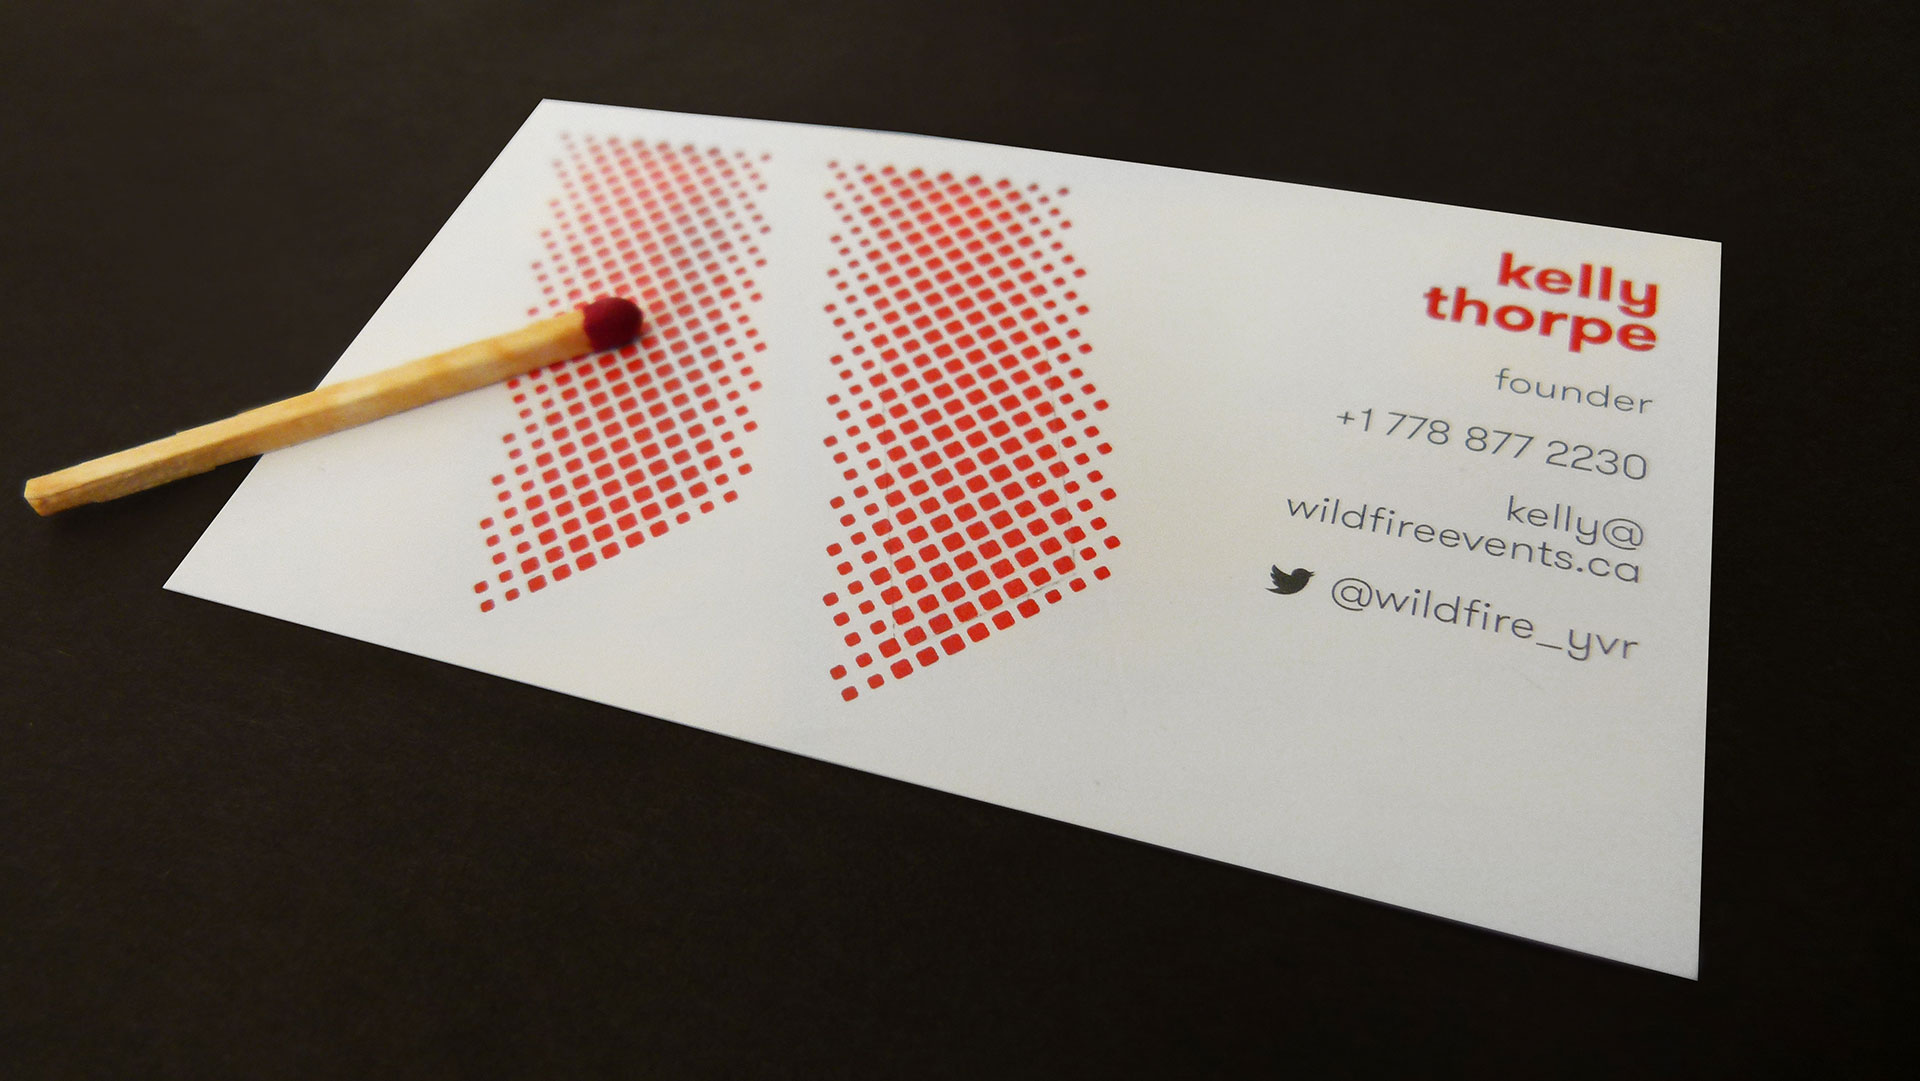 Stylish Clientwildfire Experiential Cossette Communications Created A Business Card So Hot That If You Have A Wildfire Business Cards Business Card Paper Types Business Card Paper Cutter cards Business Card Paper